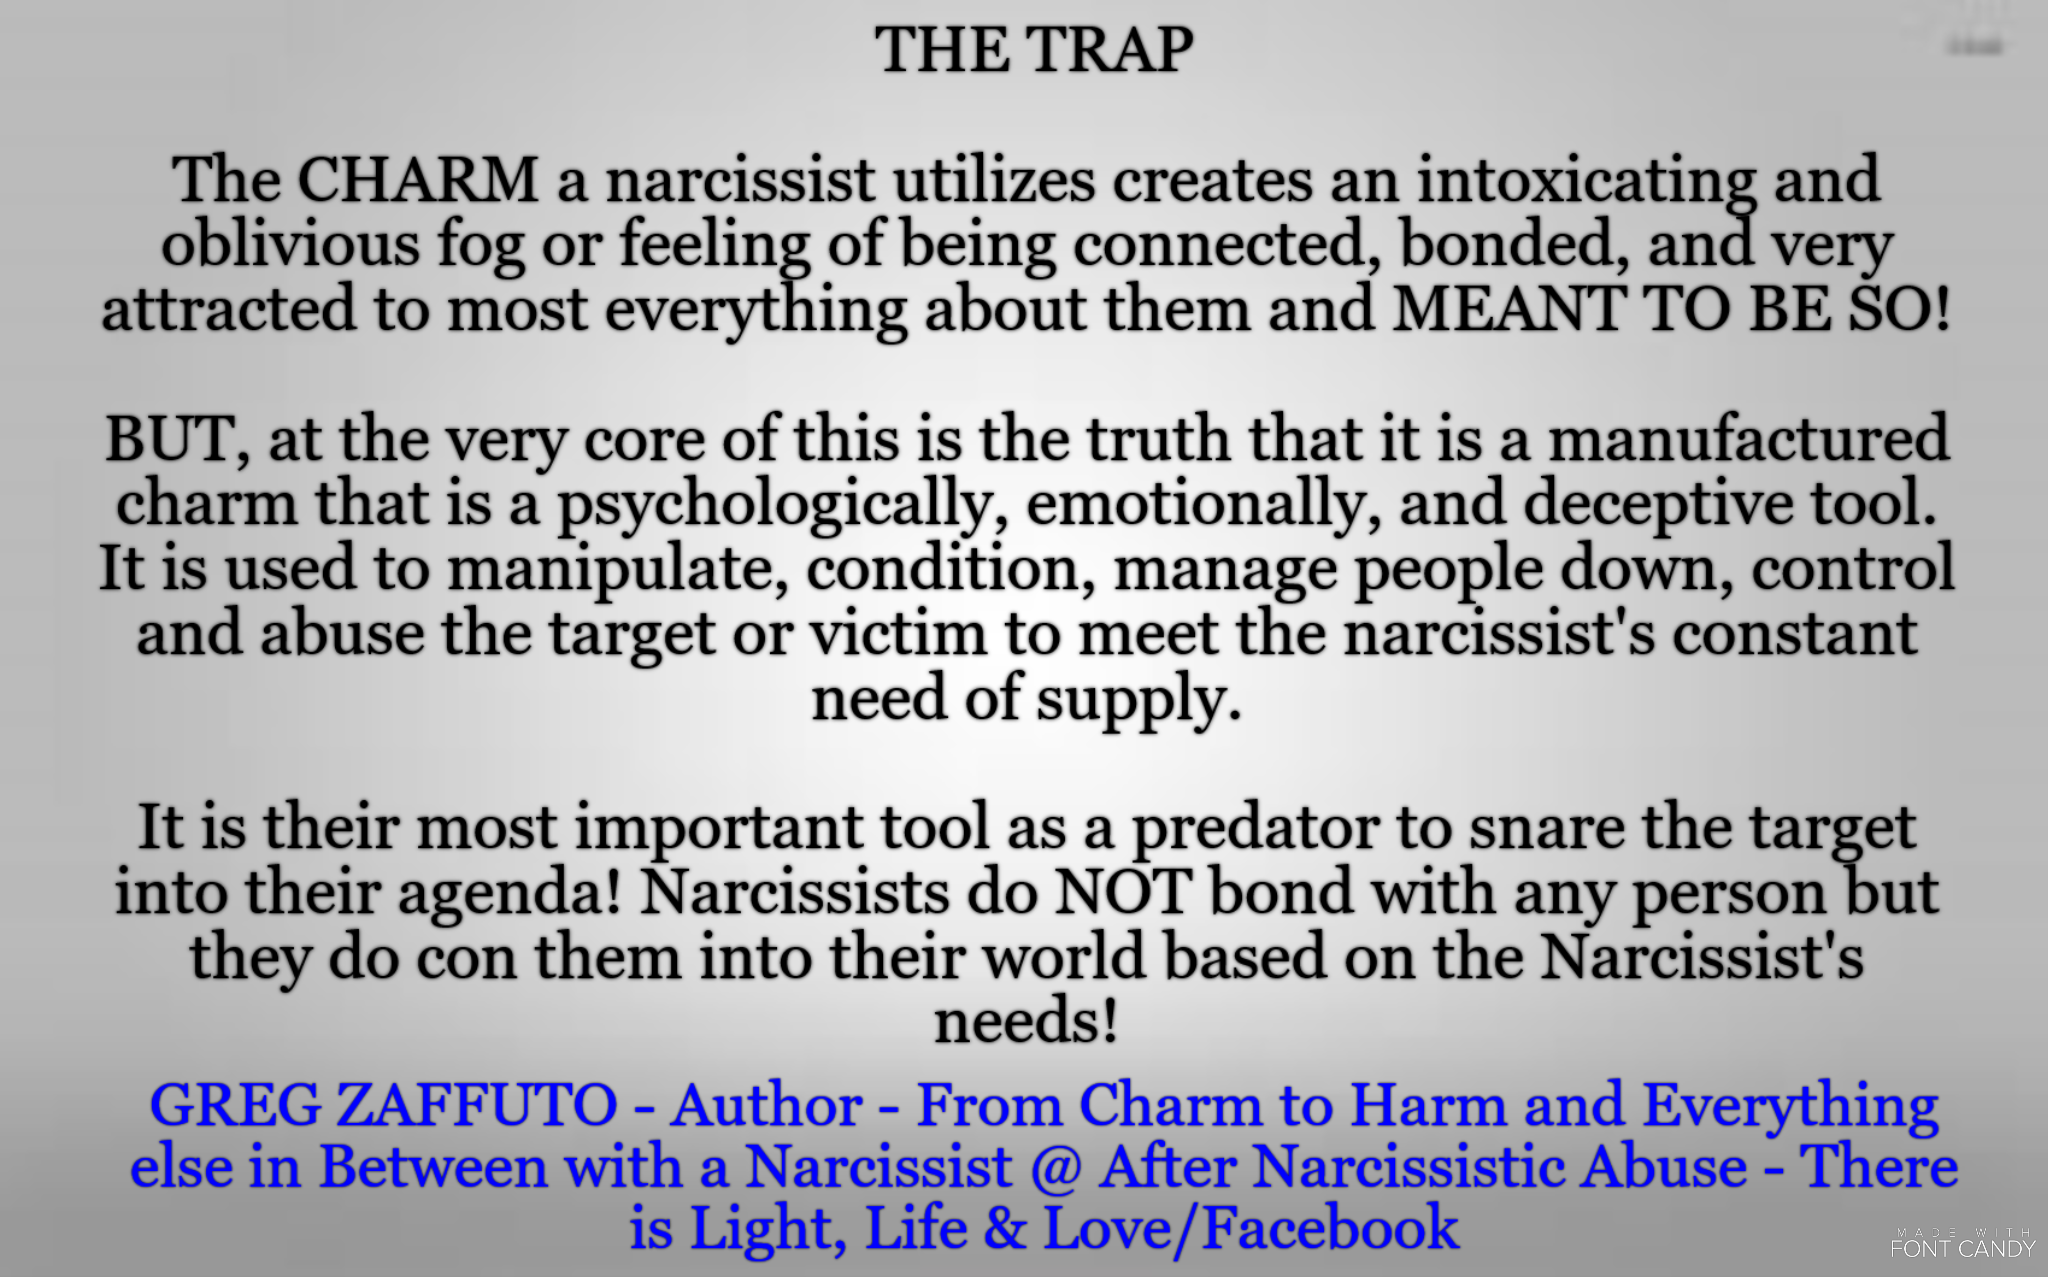 MORE on the anatomy of a Narcissist  What they APPEAR to be and what